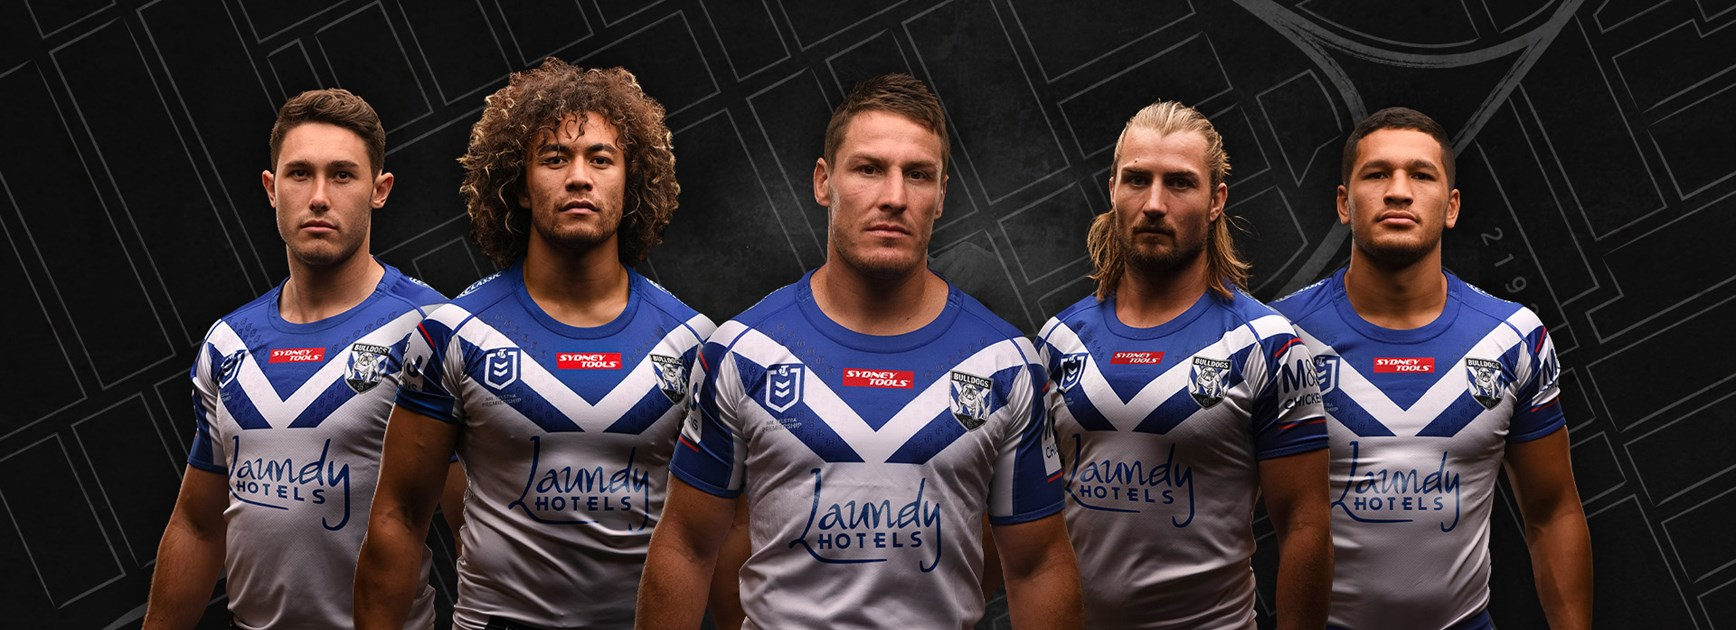 Laundy Hotels announced as Major Sponsor of the Bulldogs